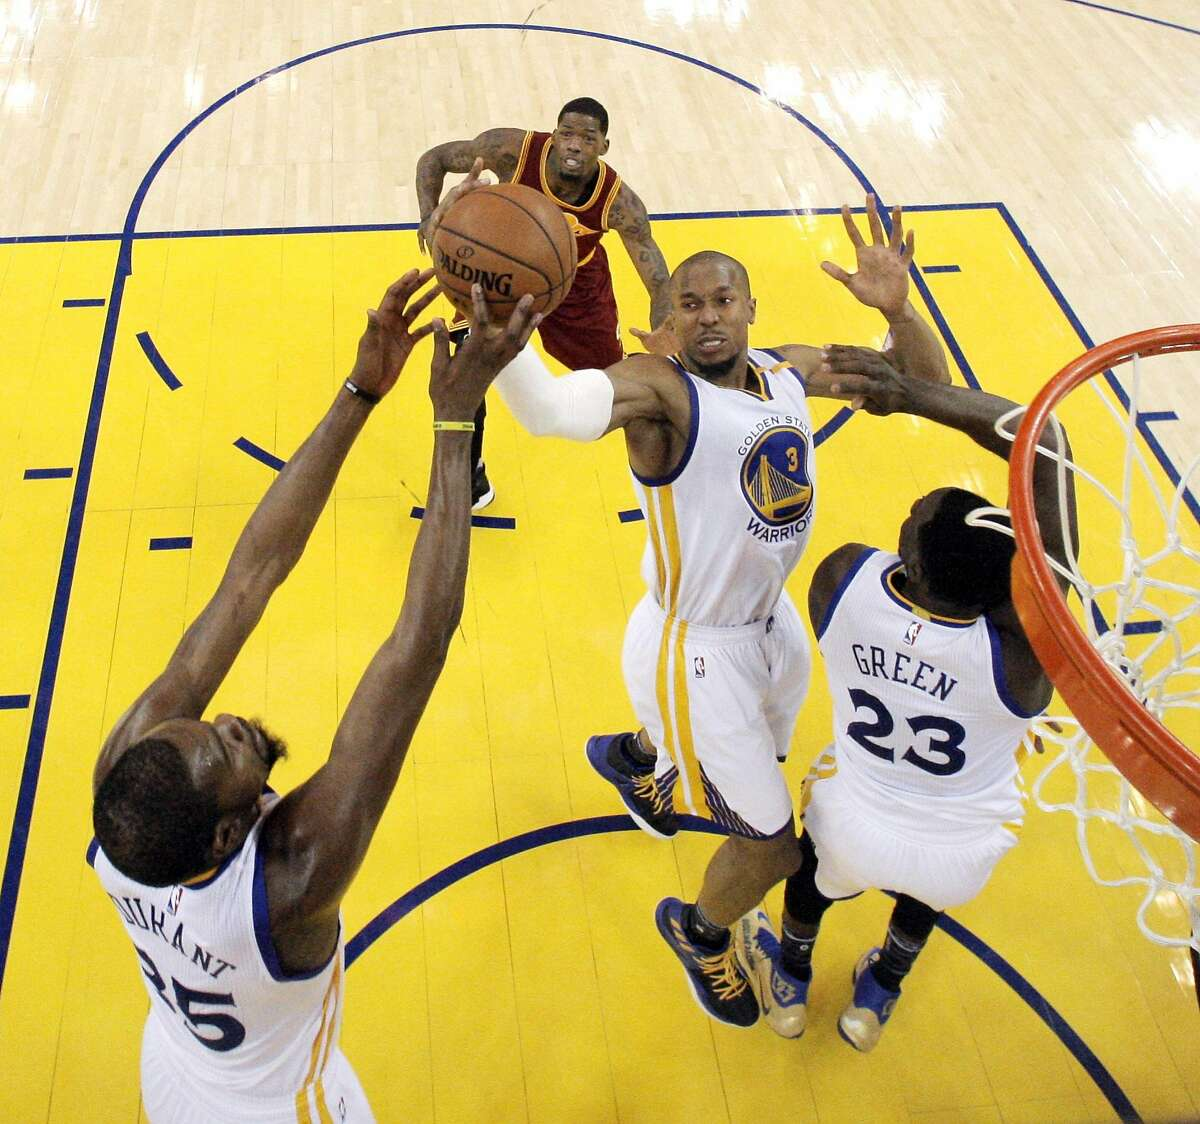 David West (3) reaches for a rebound in the second half as the Golden State Warriors played the Cleveland Cavaliers at Oracle Arena in Oakland, Calif., on Monday, January 16, 2017.